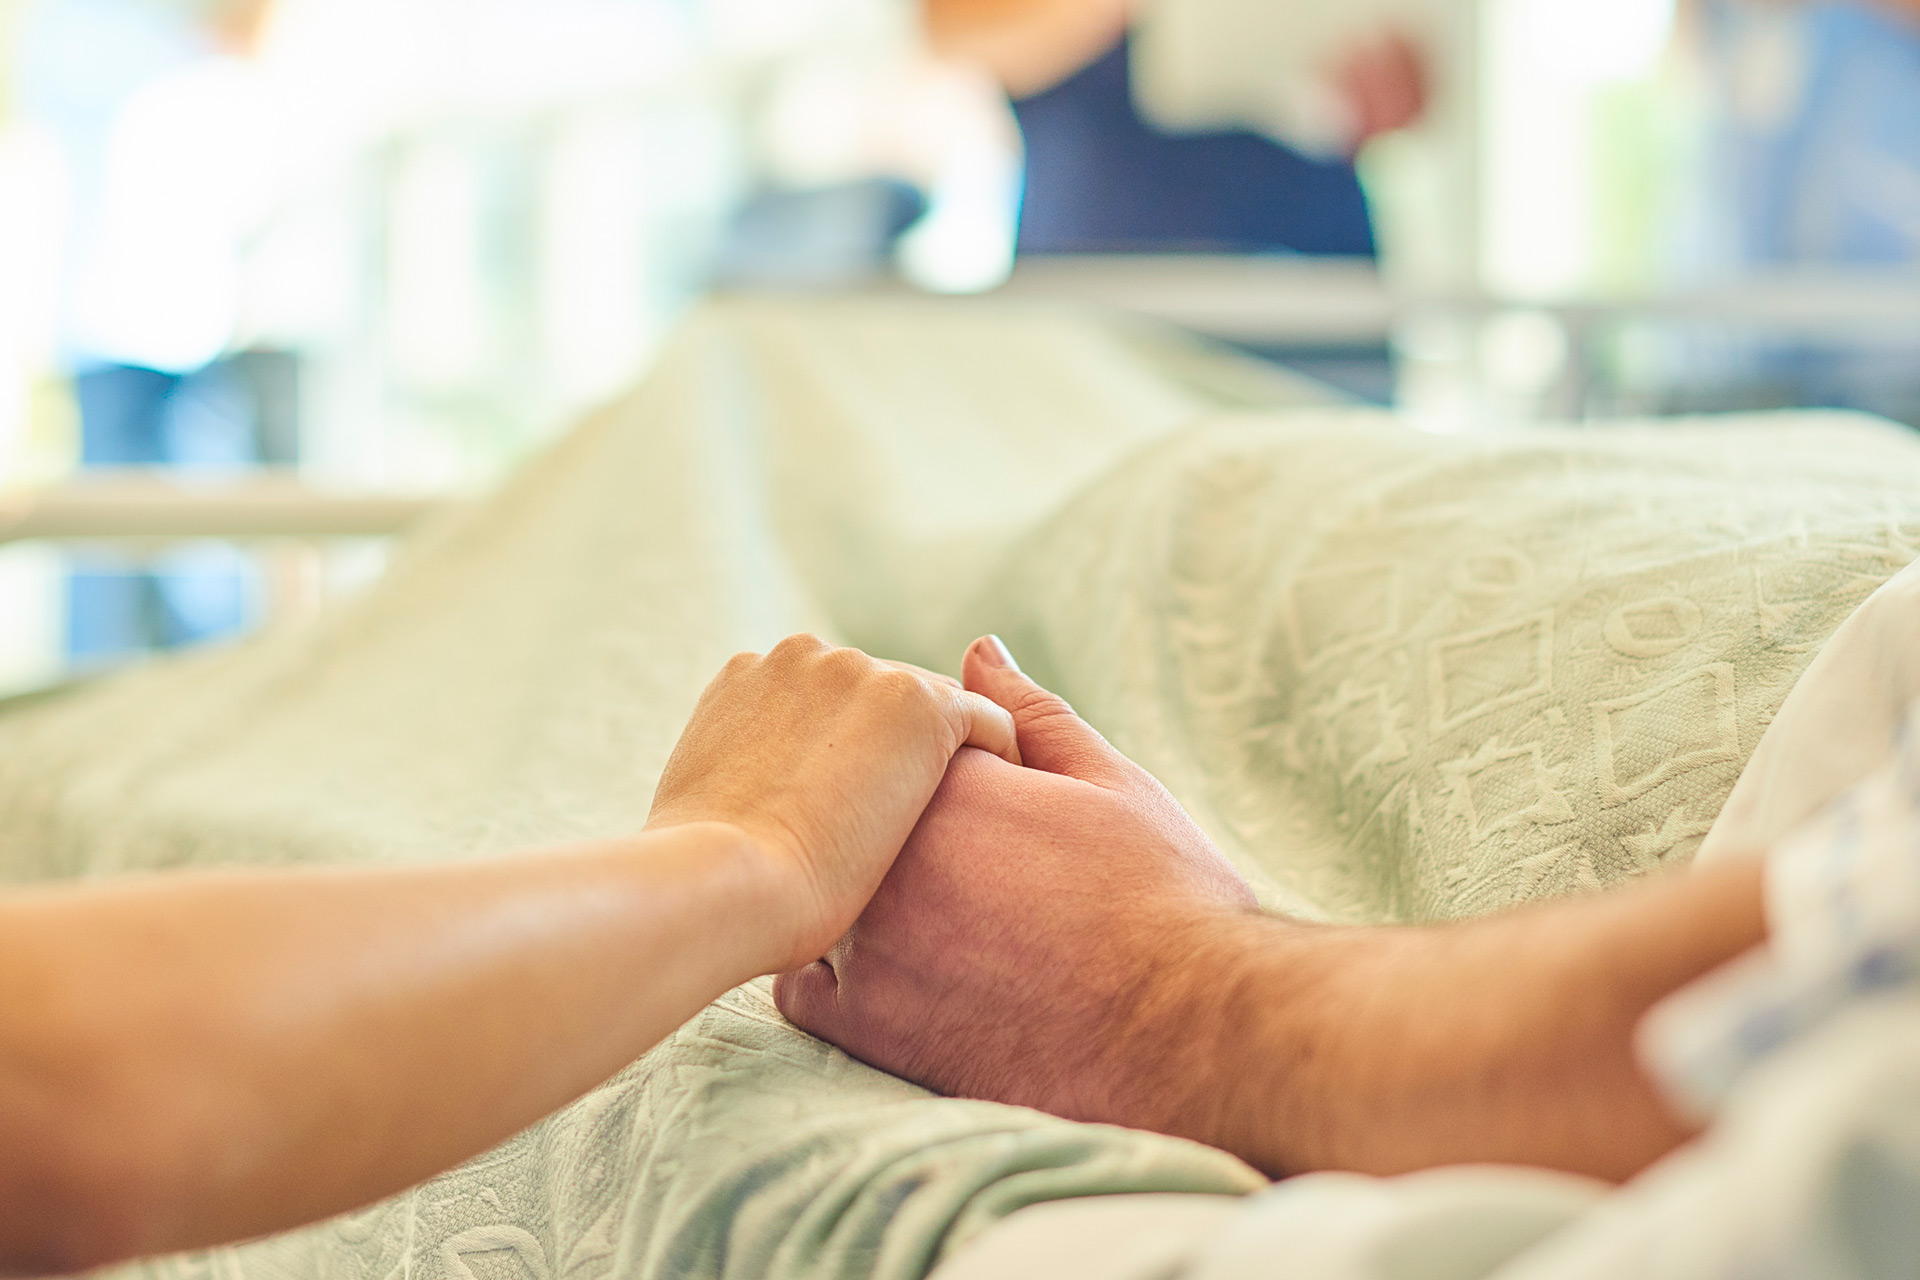 Two people holding hands in a hospital room.